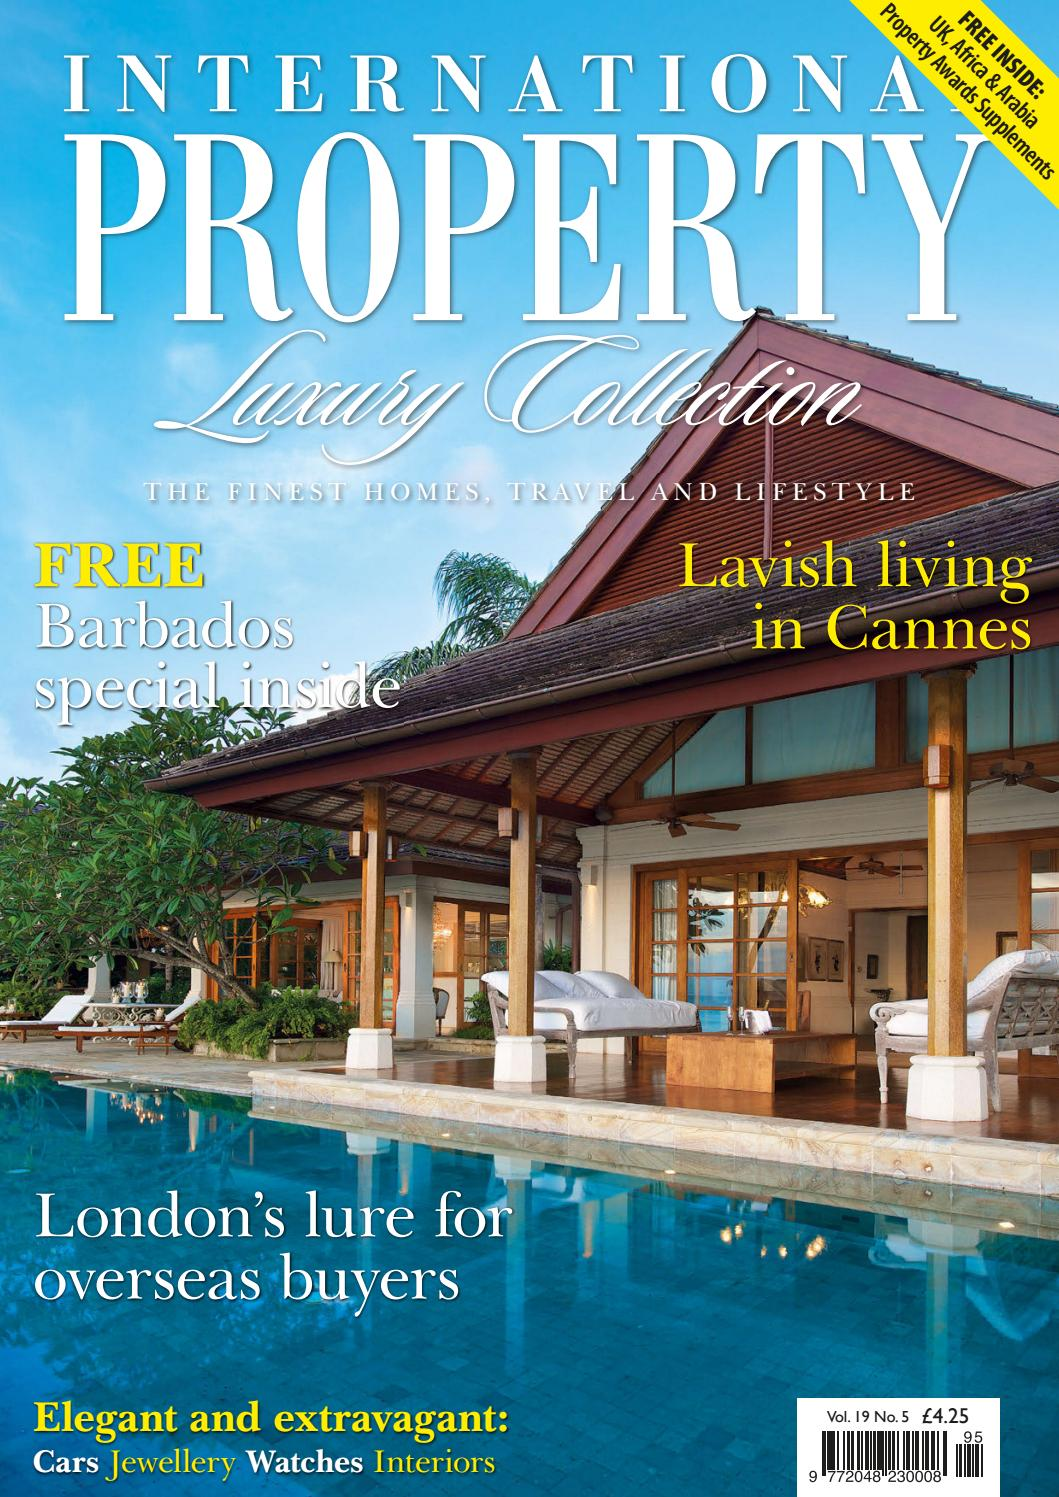 International Property Travel Volume 19 Number 5 By Media